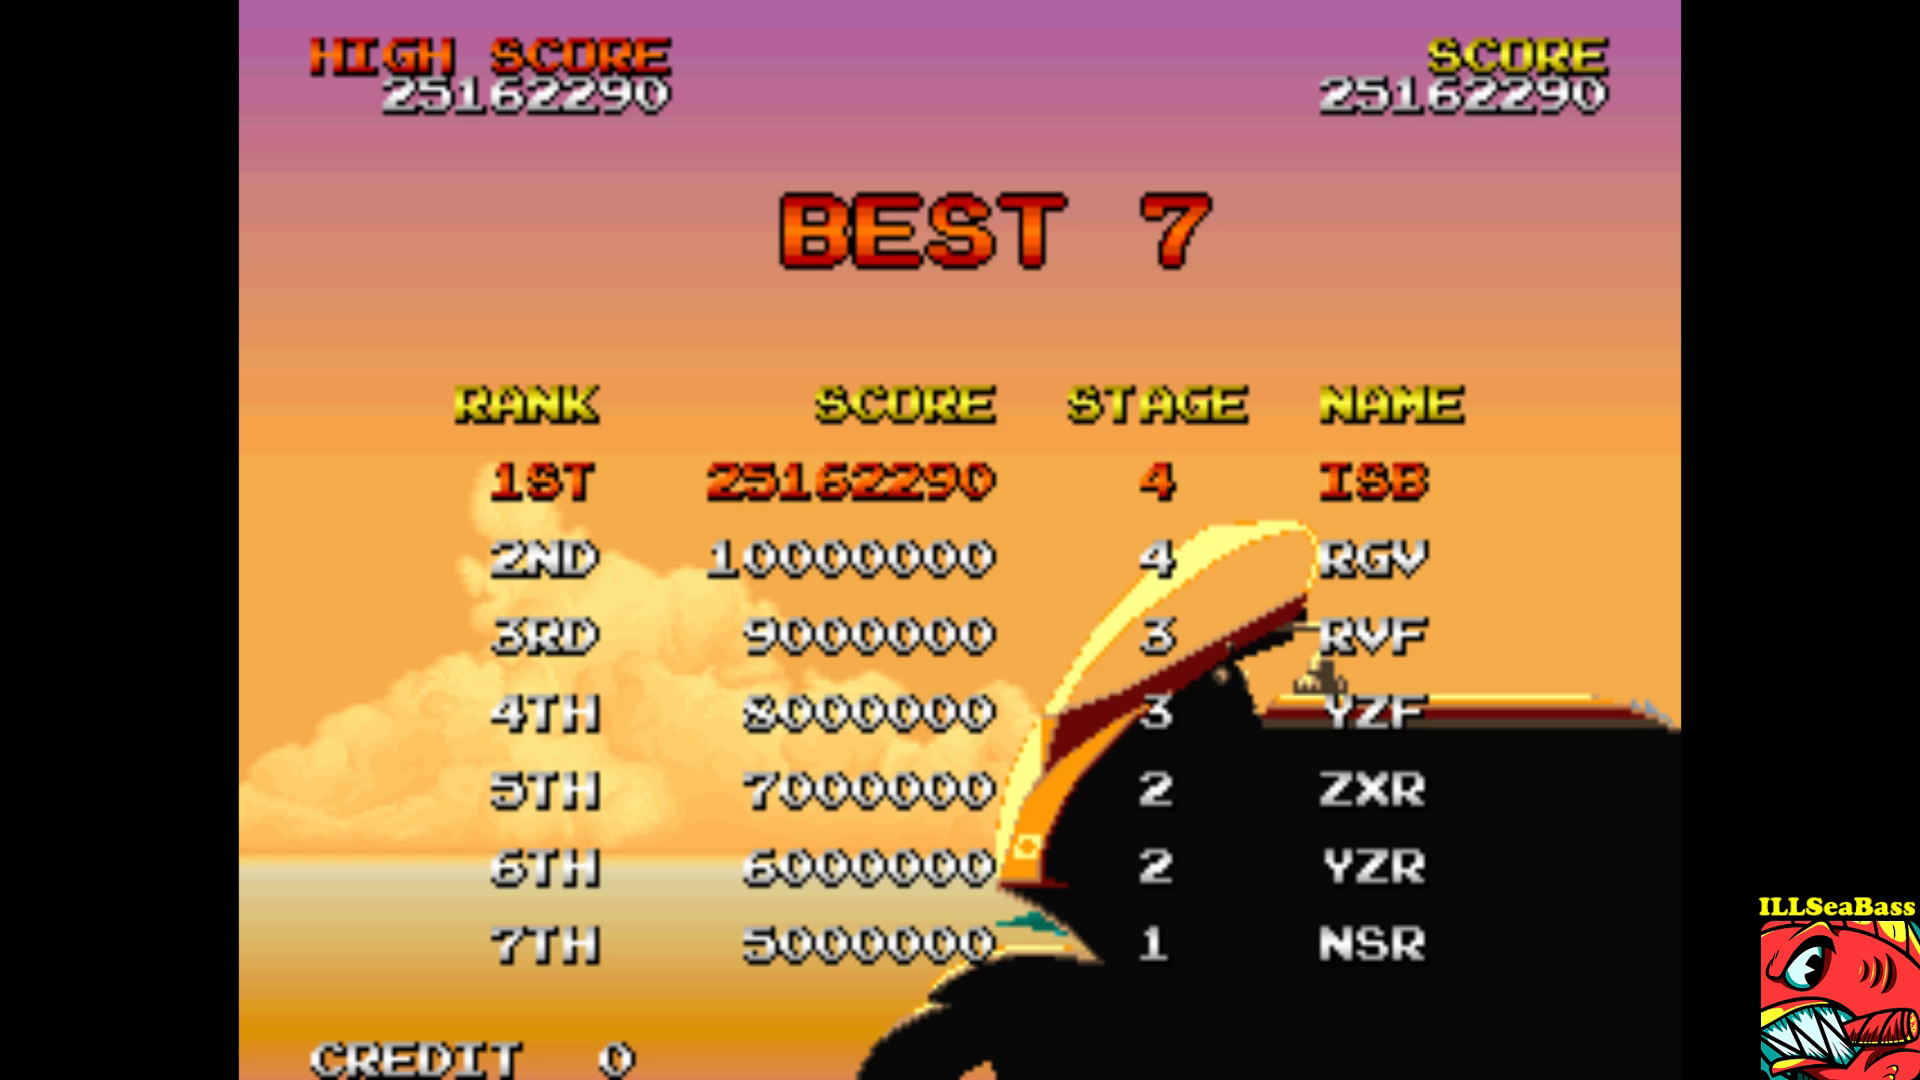 ILLSeaBass: Racing Hero (Arcade Emulated / M.A.M.E.) 25,162,290 points on 2017-09-19 21:52:15